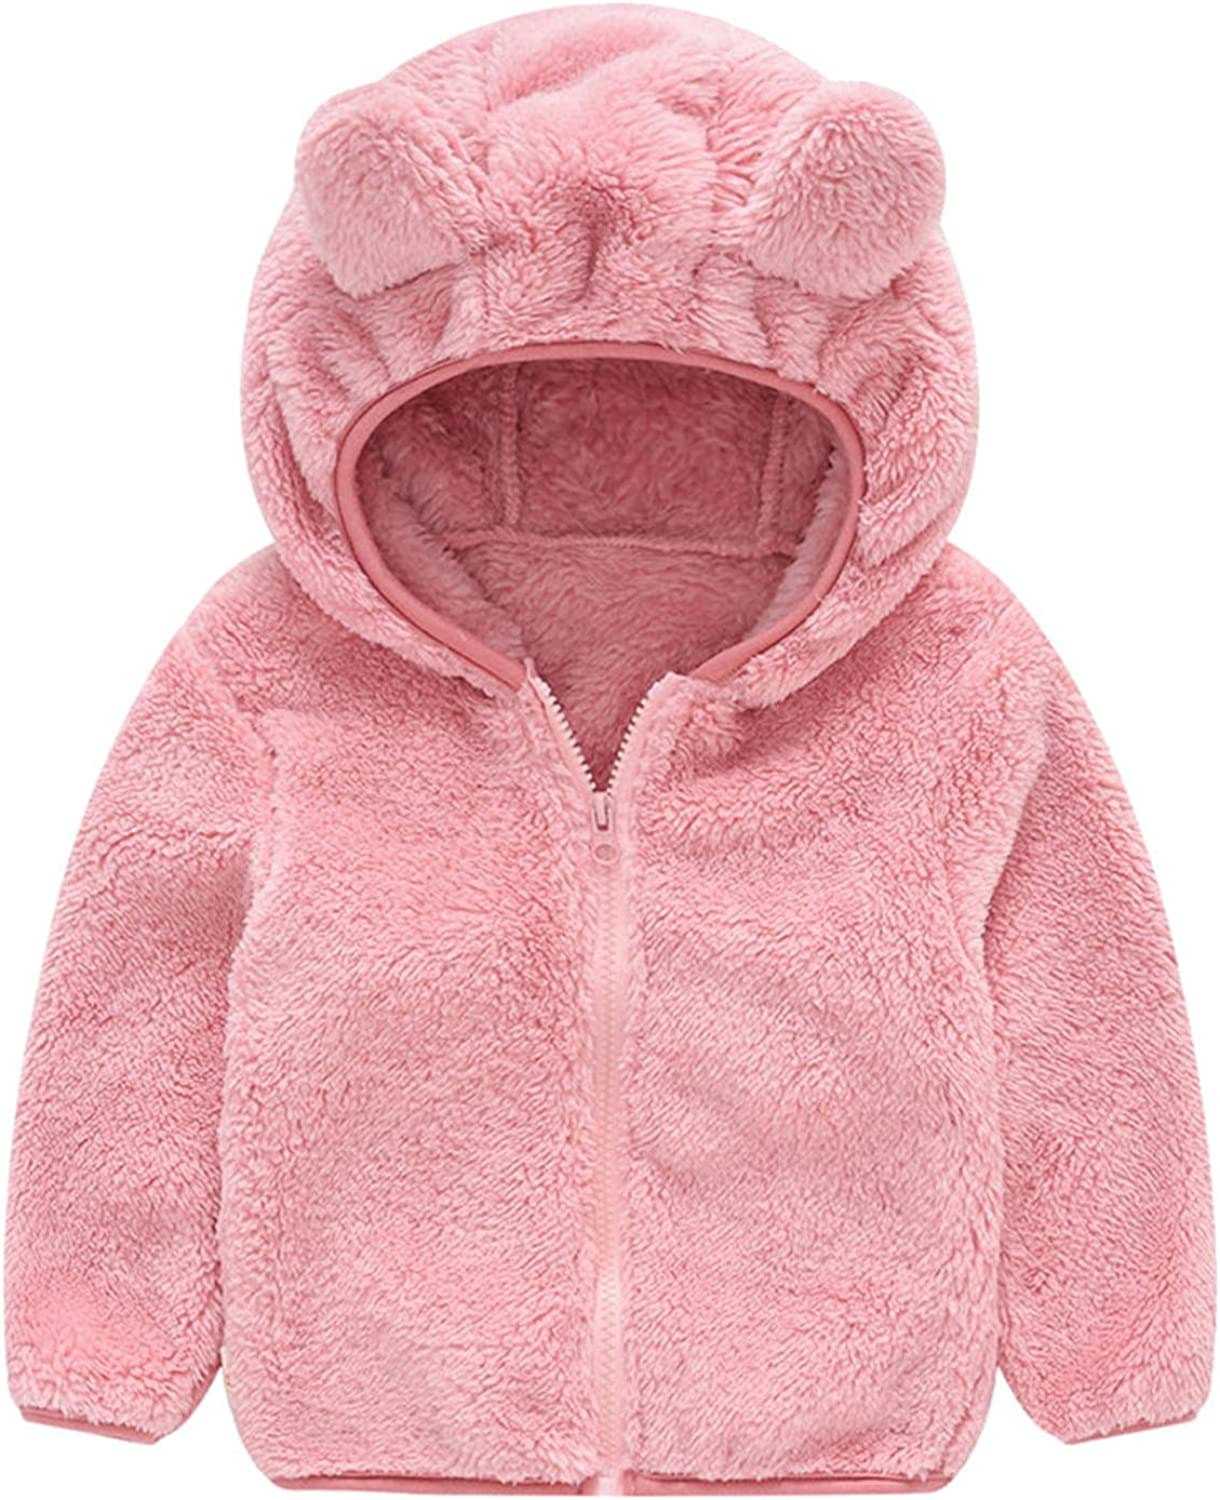 Toddler Outlet sale feature Hooded Jacket Limited time sale Girl Boy Winter Top Warm Sweatshirt Outwea